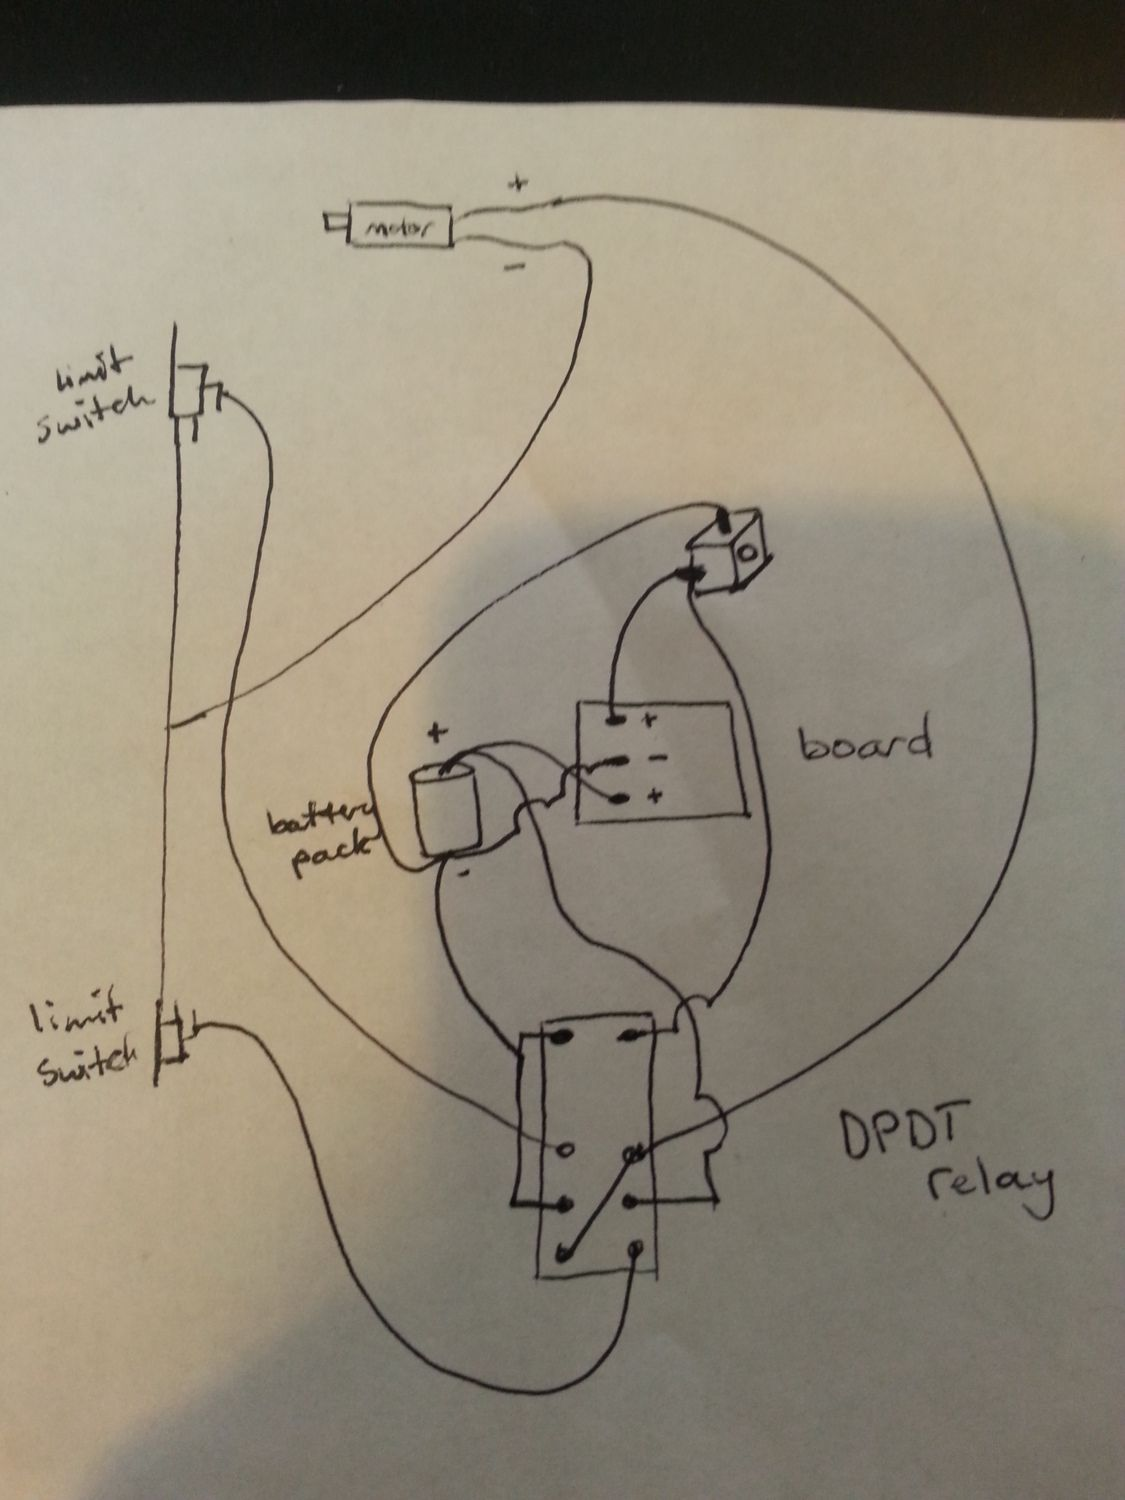 Automatic Coop Door Backyard Chickens Single Pole Double Throw Limit Switch Wiring Diagram Now Look At Your Screwdriver Innards You Will See The Control Board Plug Jack Motor And Batteries We Wont Need Since Use Our